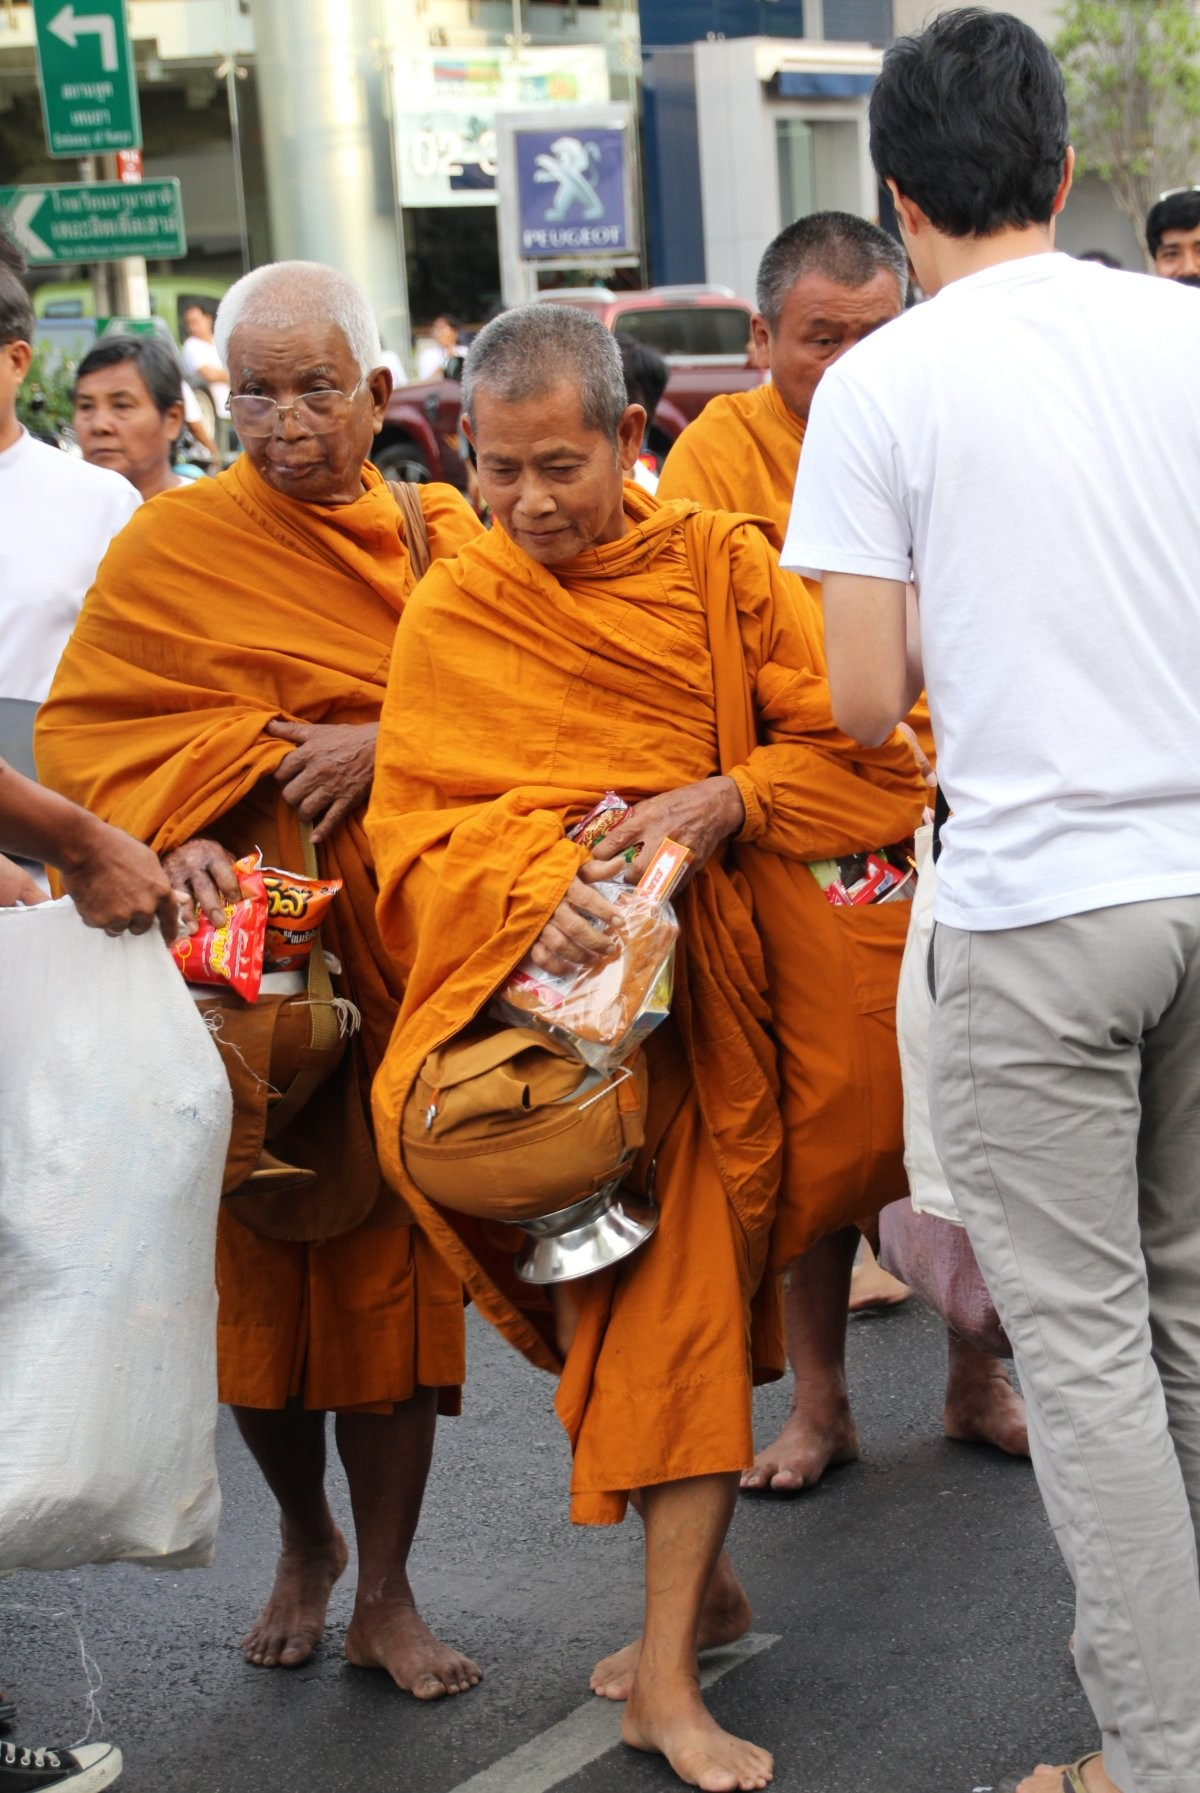 Bangkok - Mass Alms Giving in Thonglor / Sukhumvit Soi 55 LIX